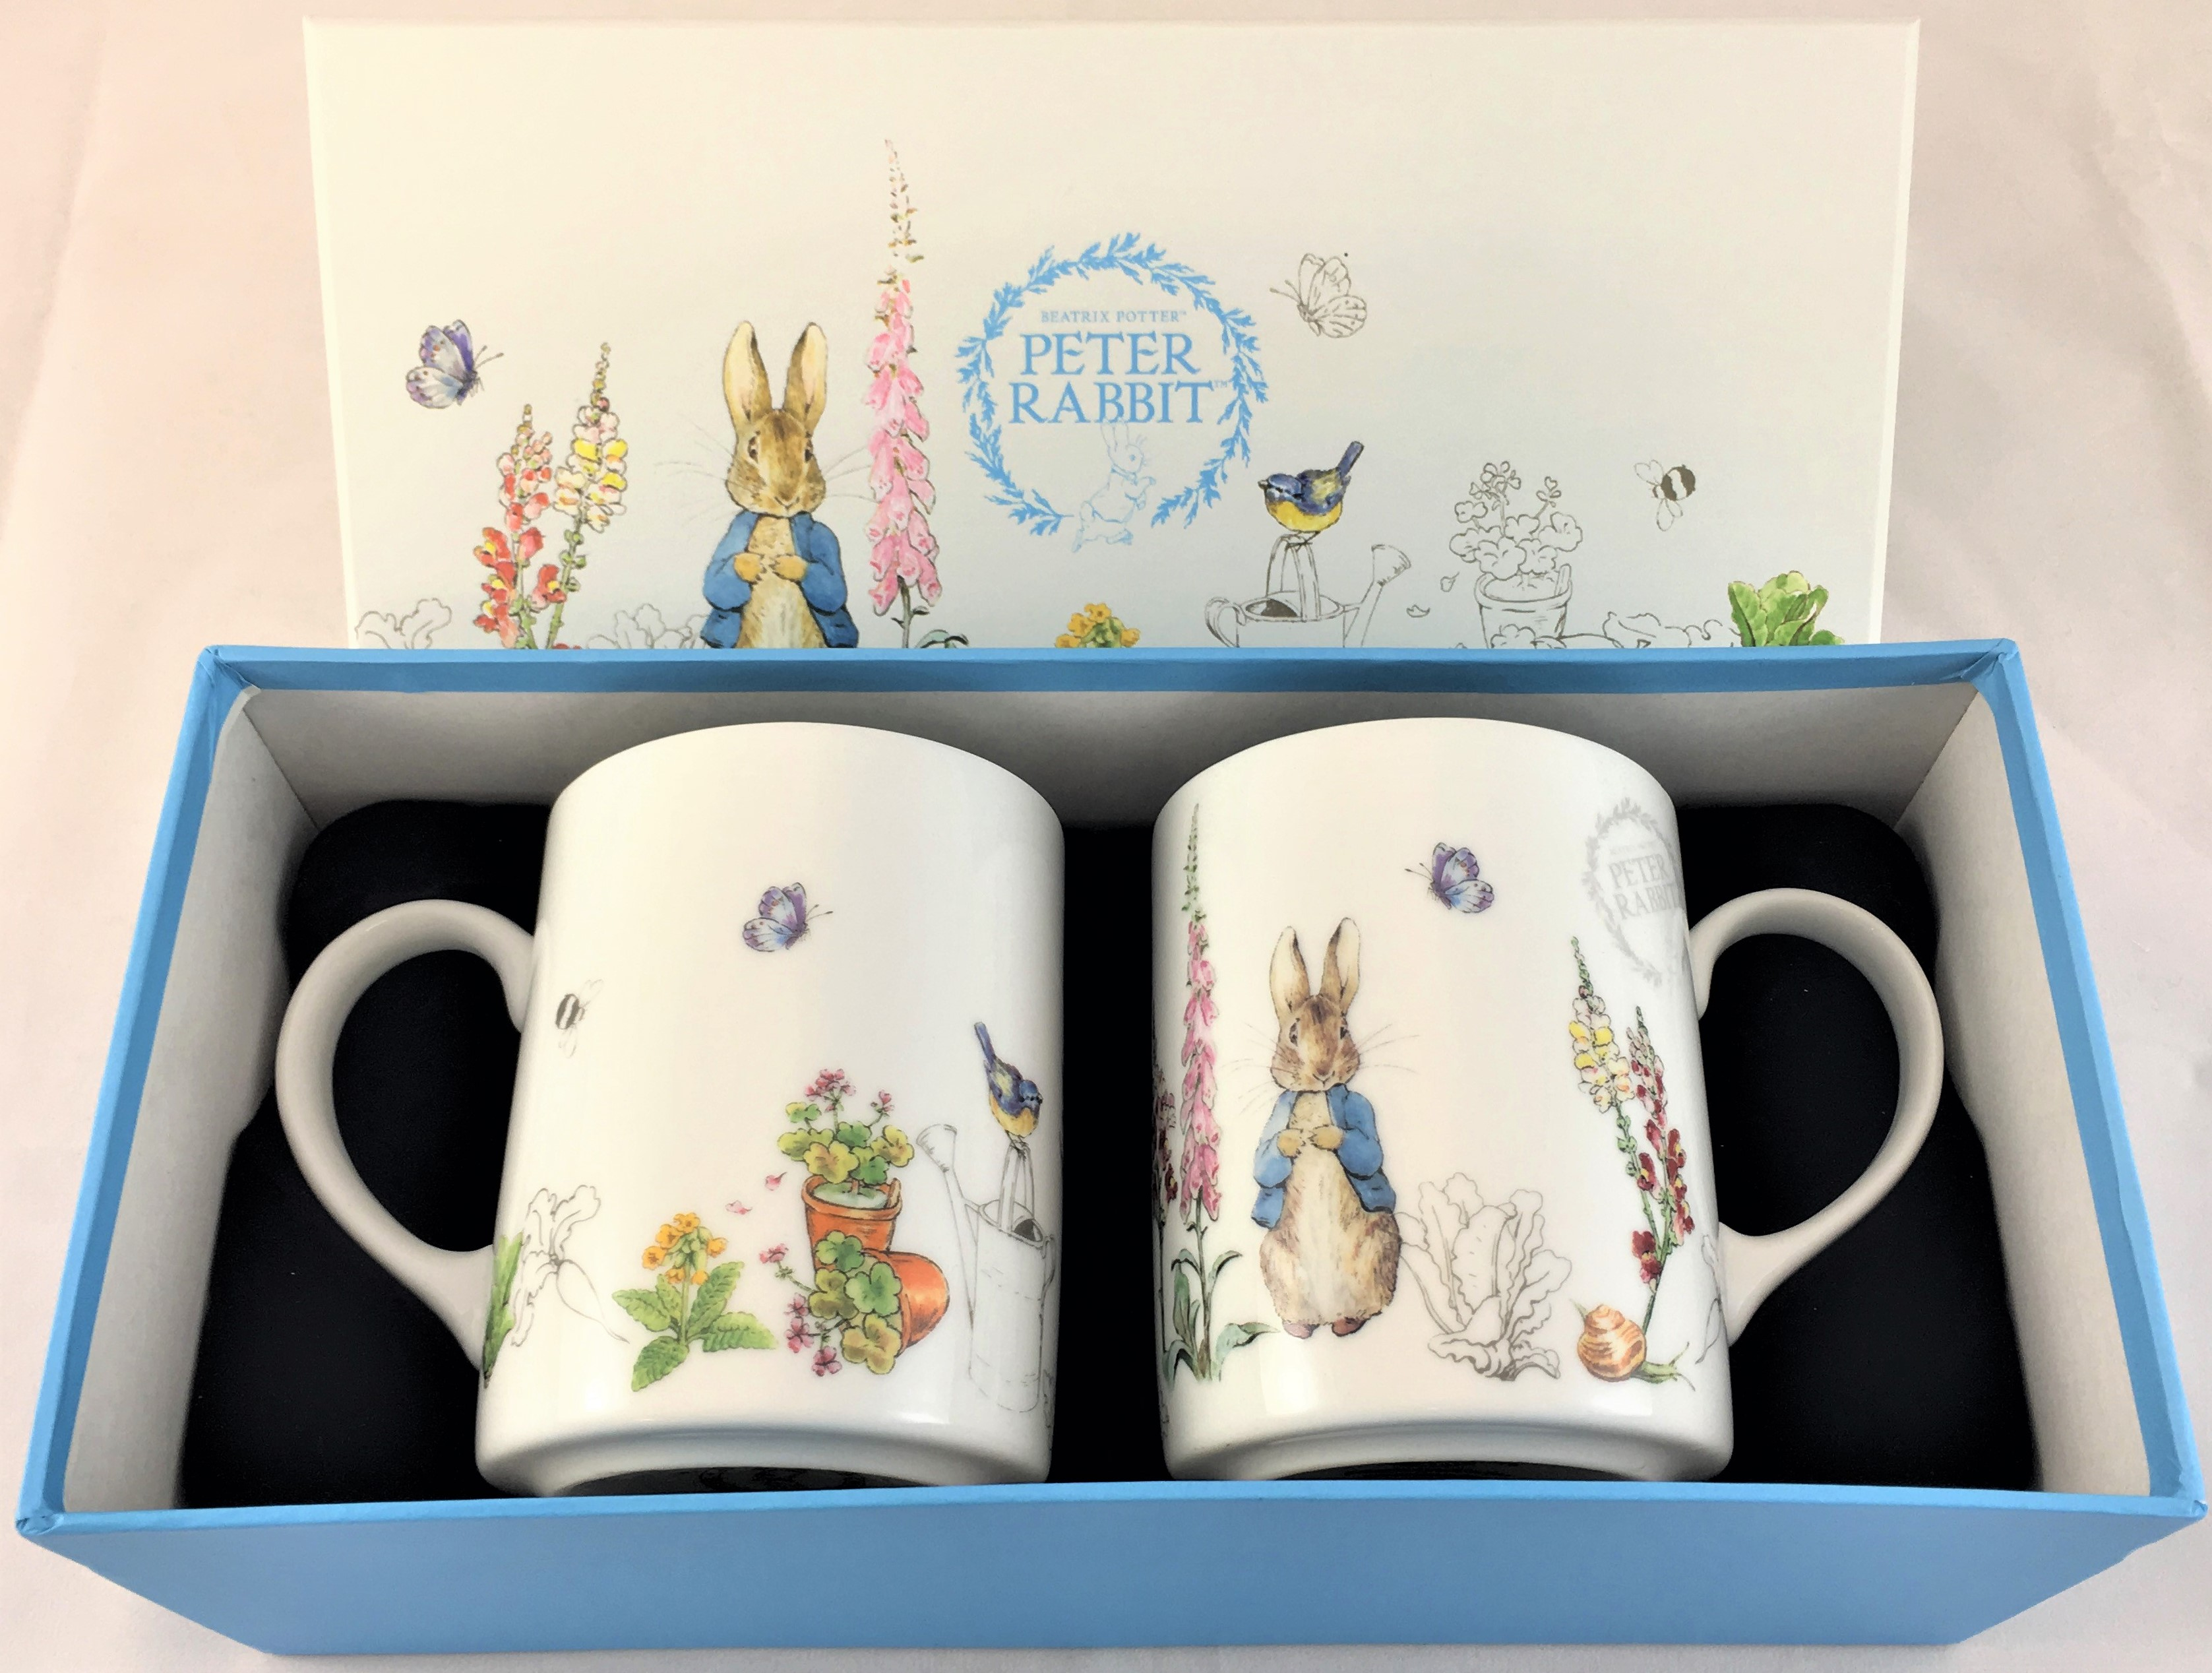 Peter Rabbit Set of Two Mugs